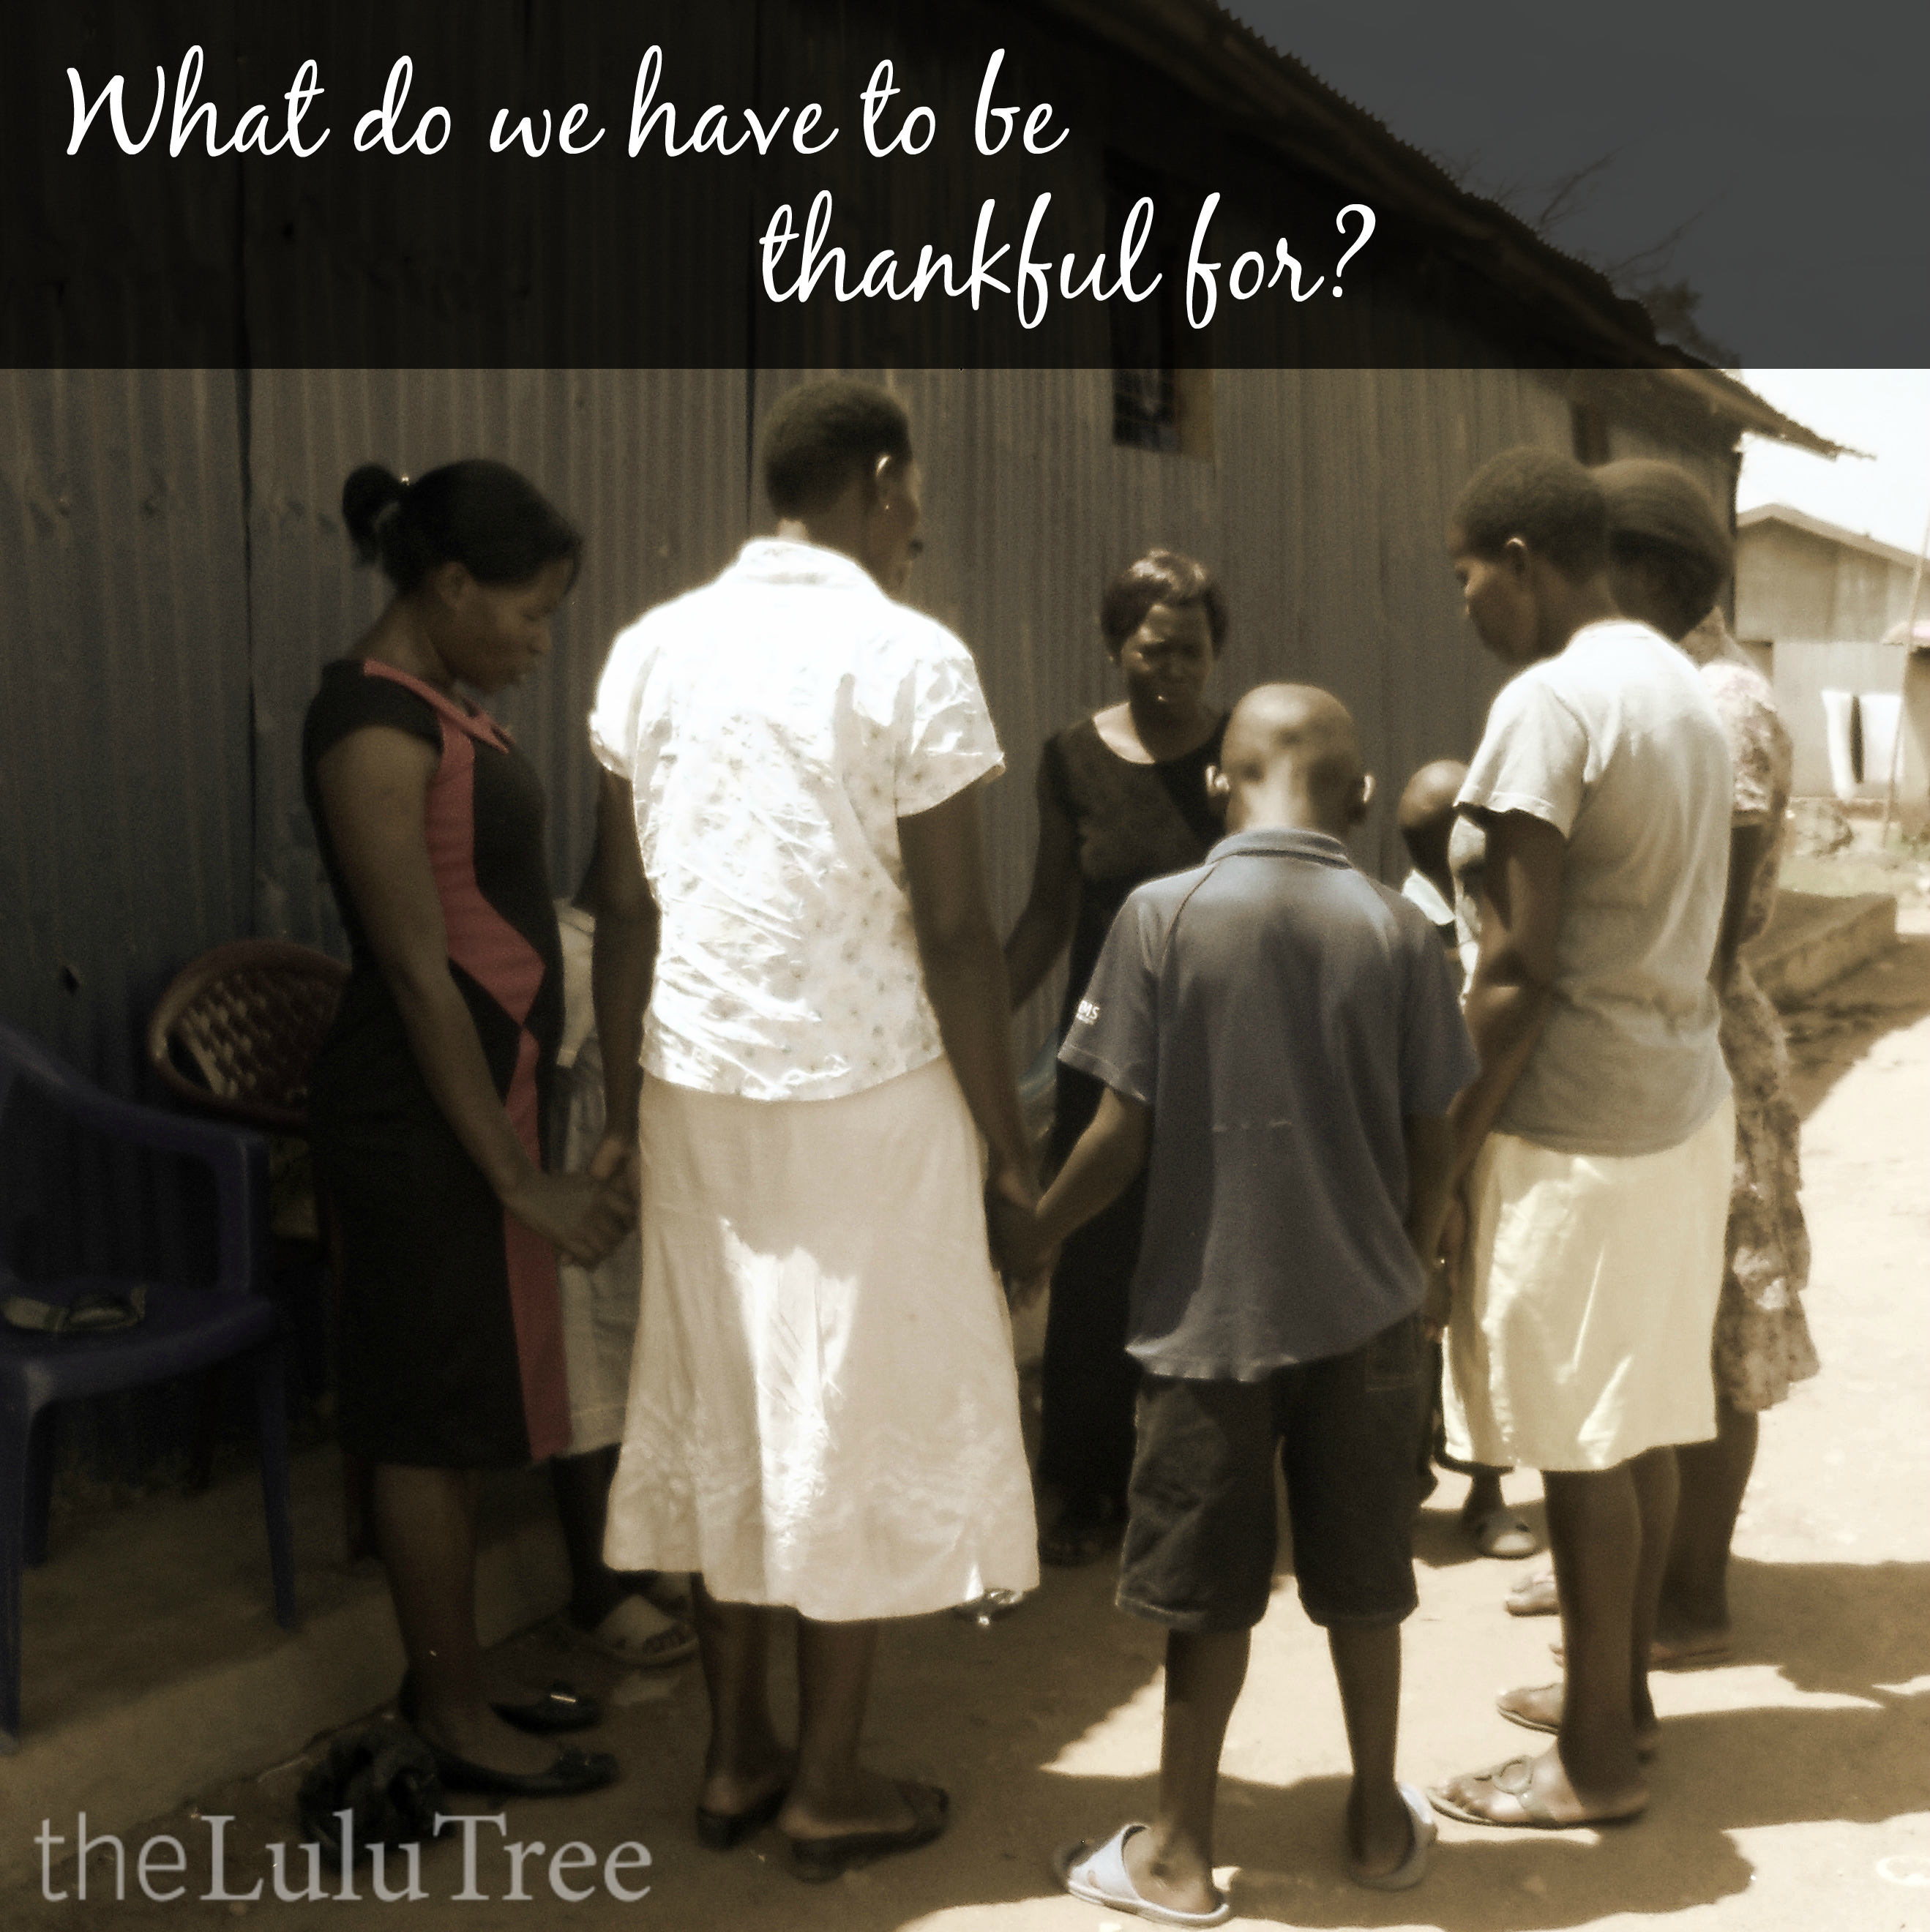 What do we have to be thankful for?